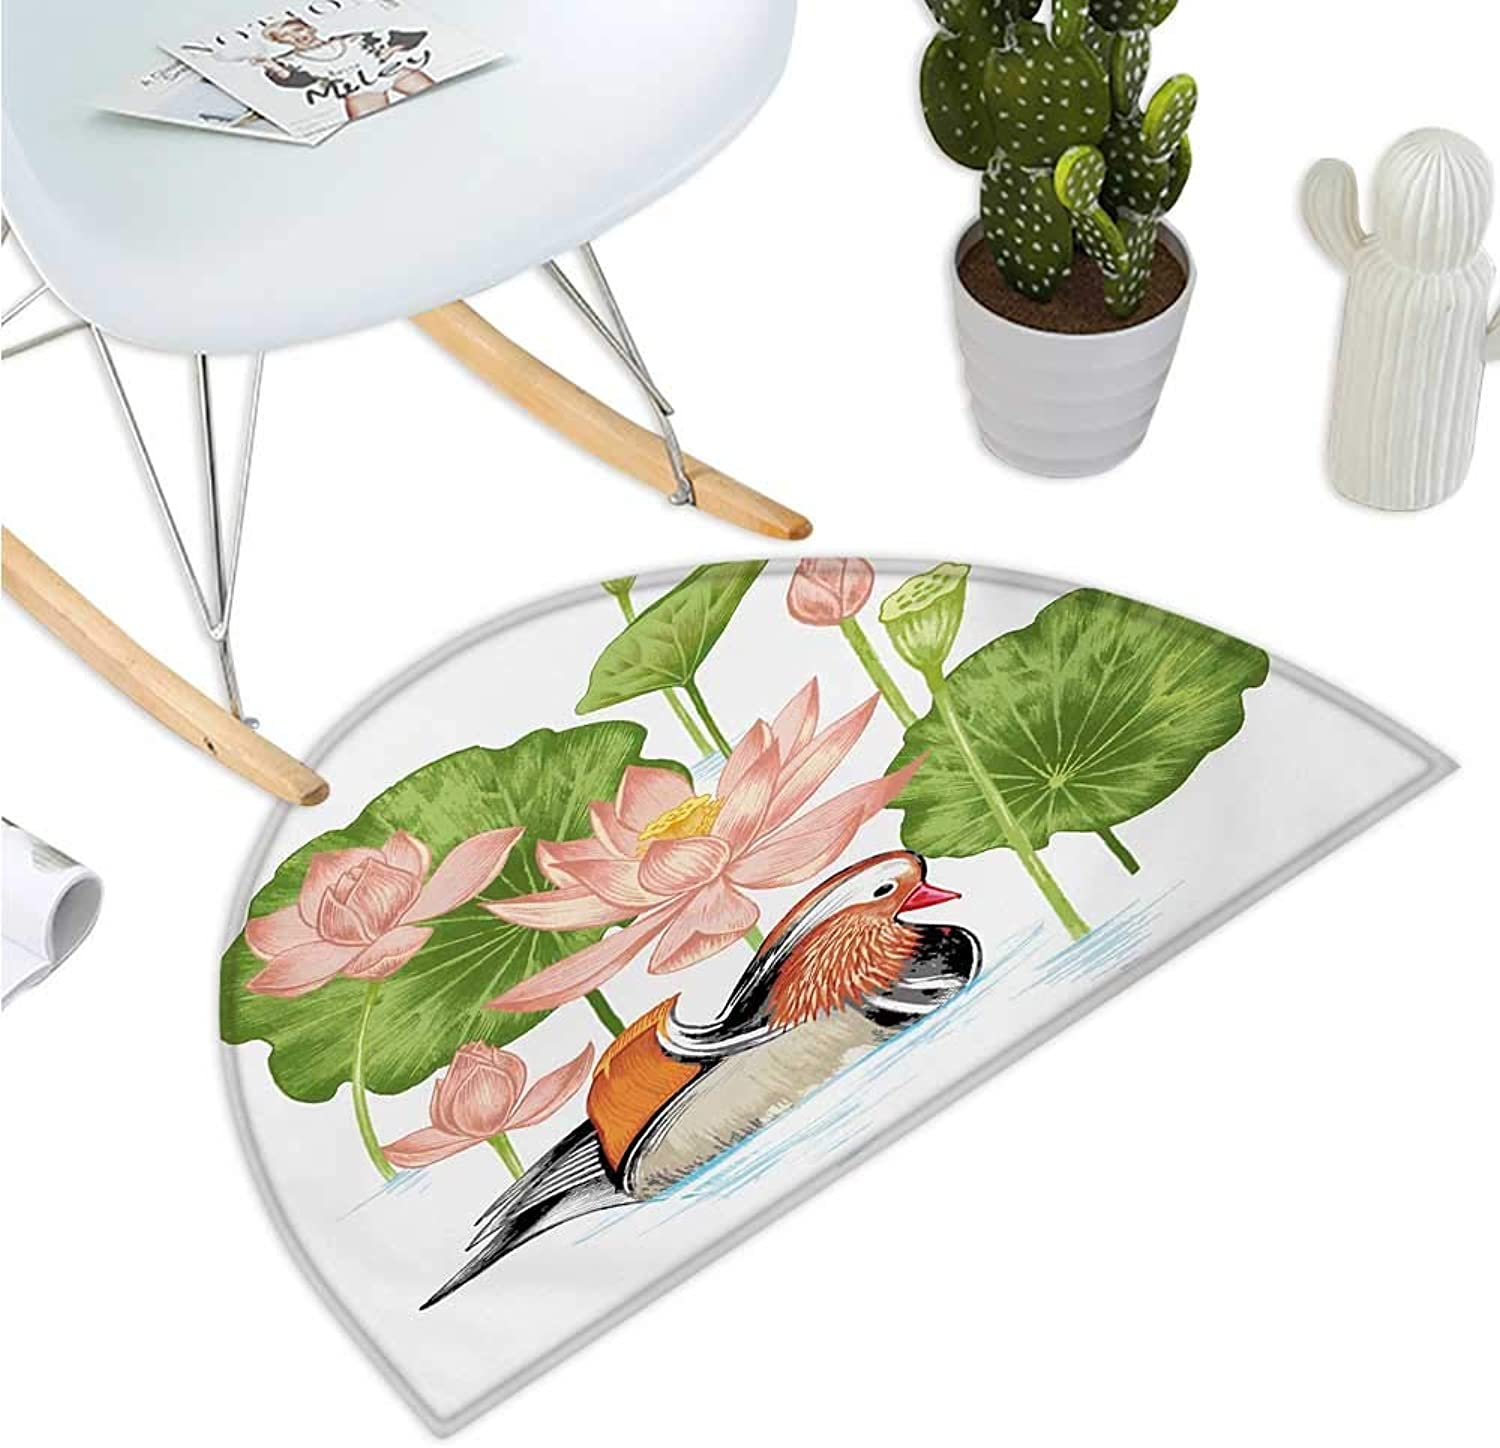 Rubber Duck Half Round Door mats Baby Mandarin Duckling in Pond with Lotus Lily Flowers Water Painting Bathroom Mat H 47.2  xD 70.8  White Green and Pink